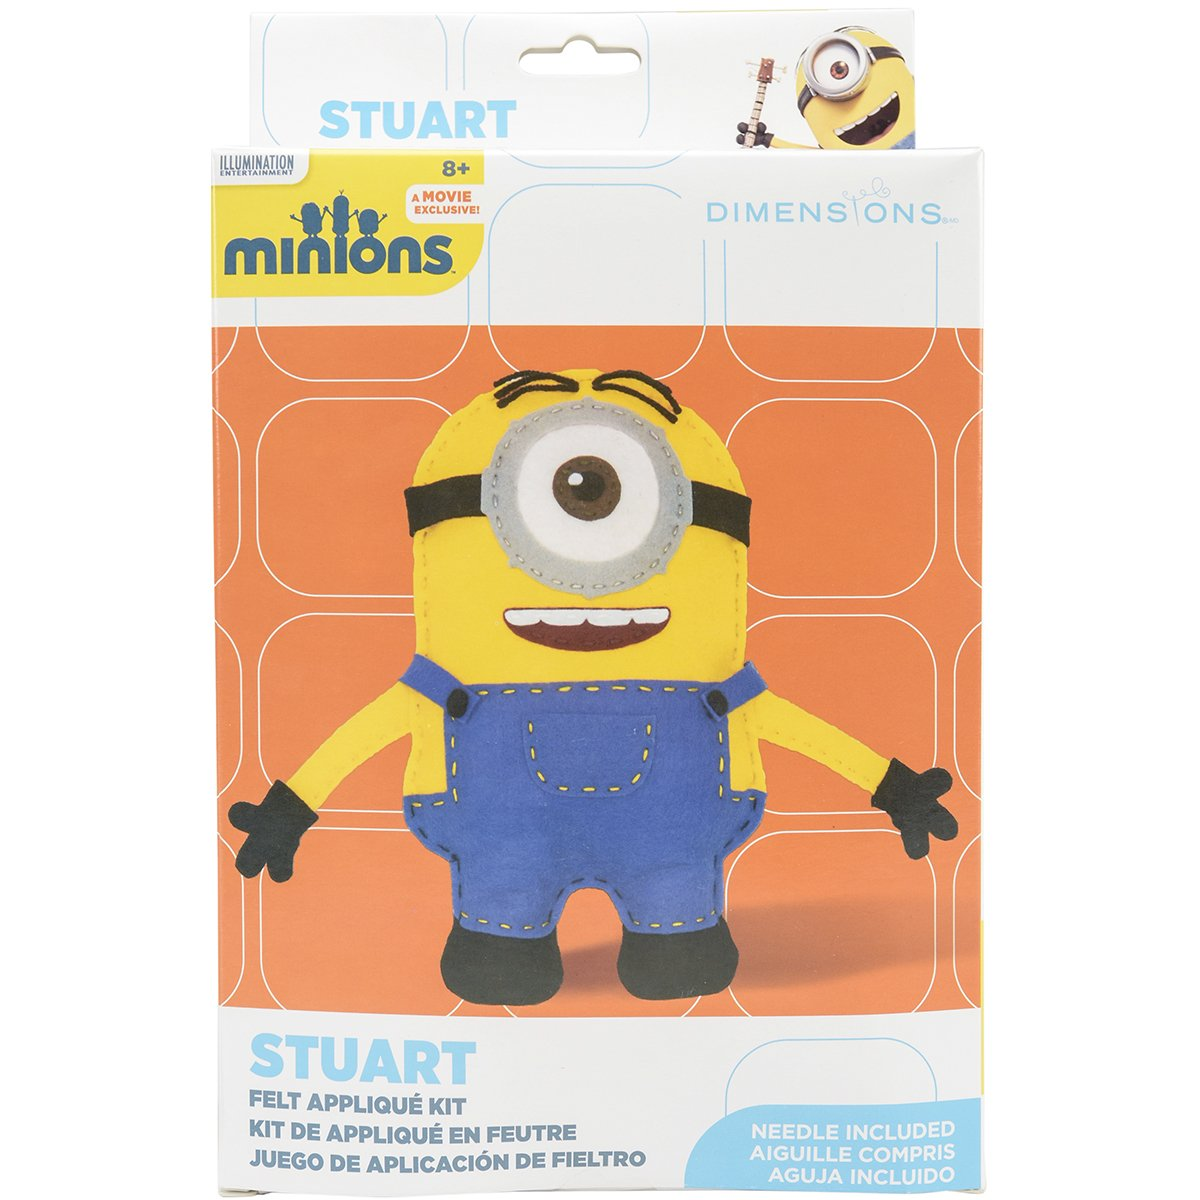 Dimensions Needlecrafts 72-74480 Minions Stuart Felt Applique Kit